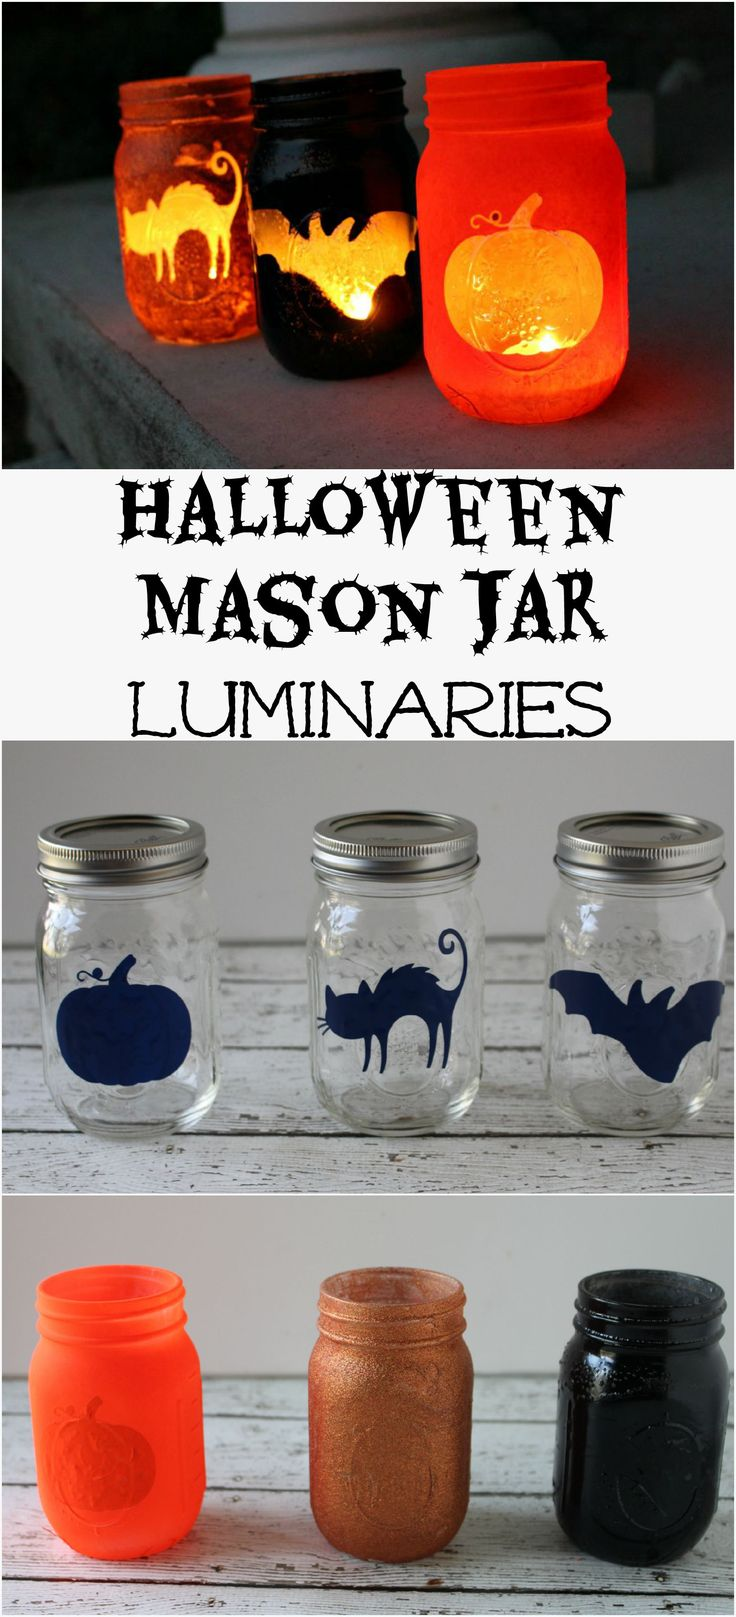 Halloween Mason Jar Luminaries - The EASIEST Halloween decoration EVER!!!